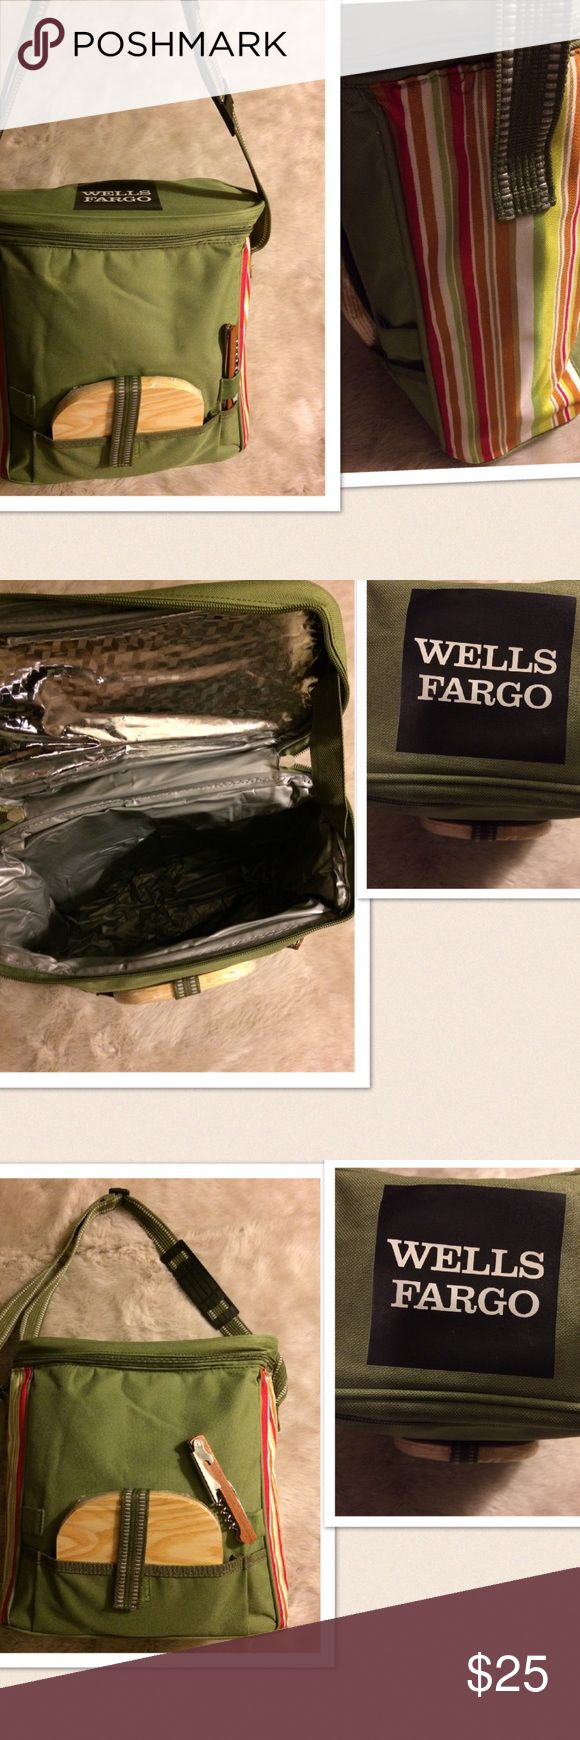 🆕 Wells Fargo Insulated Lunch Bag 🆕 Wells Fargo Insulated Lunch Bag. Includes cutting board and bottle opener. wells fargo Bags Totes